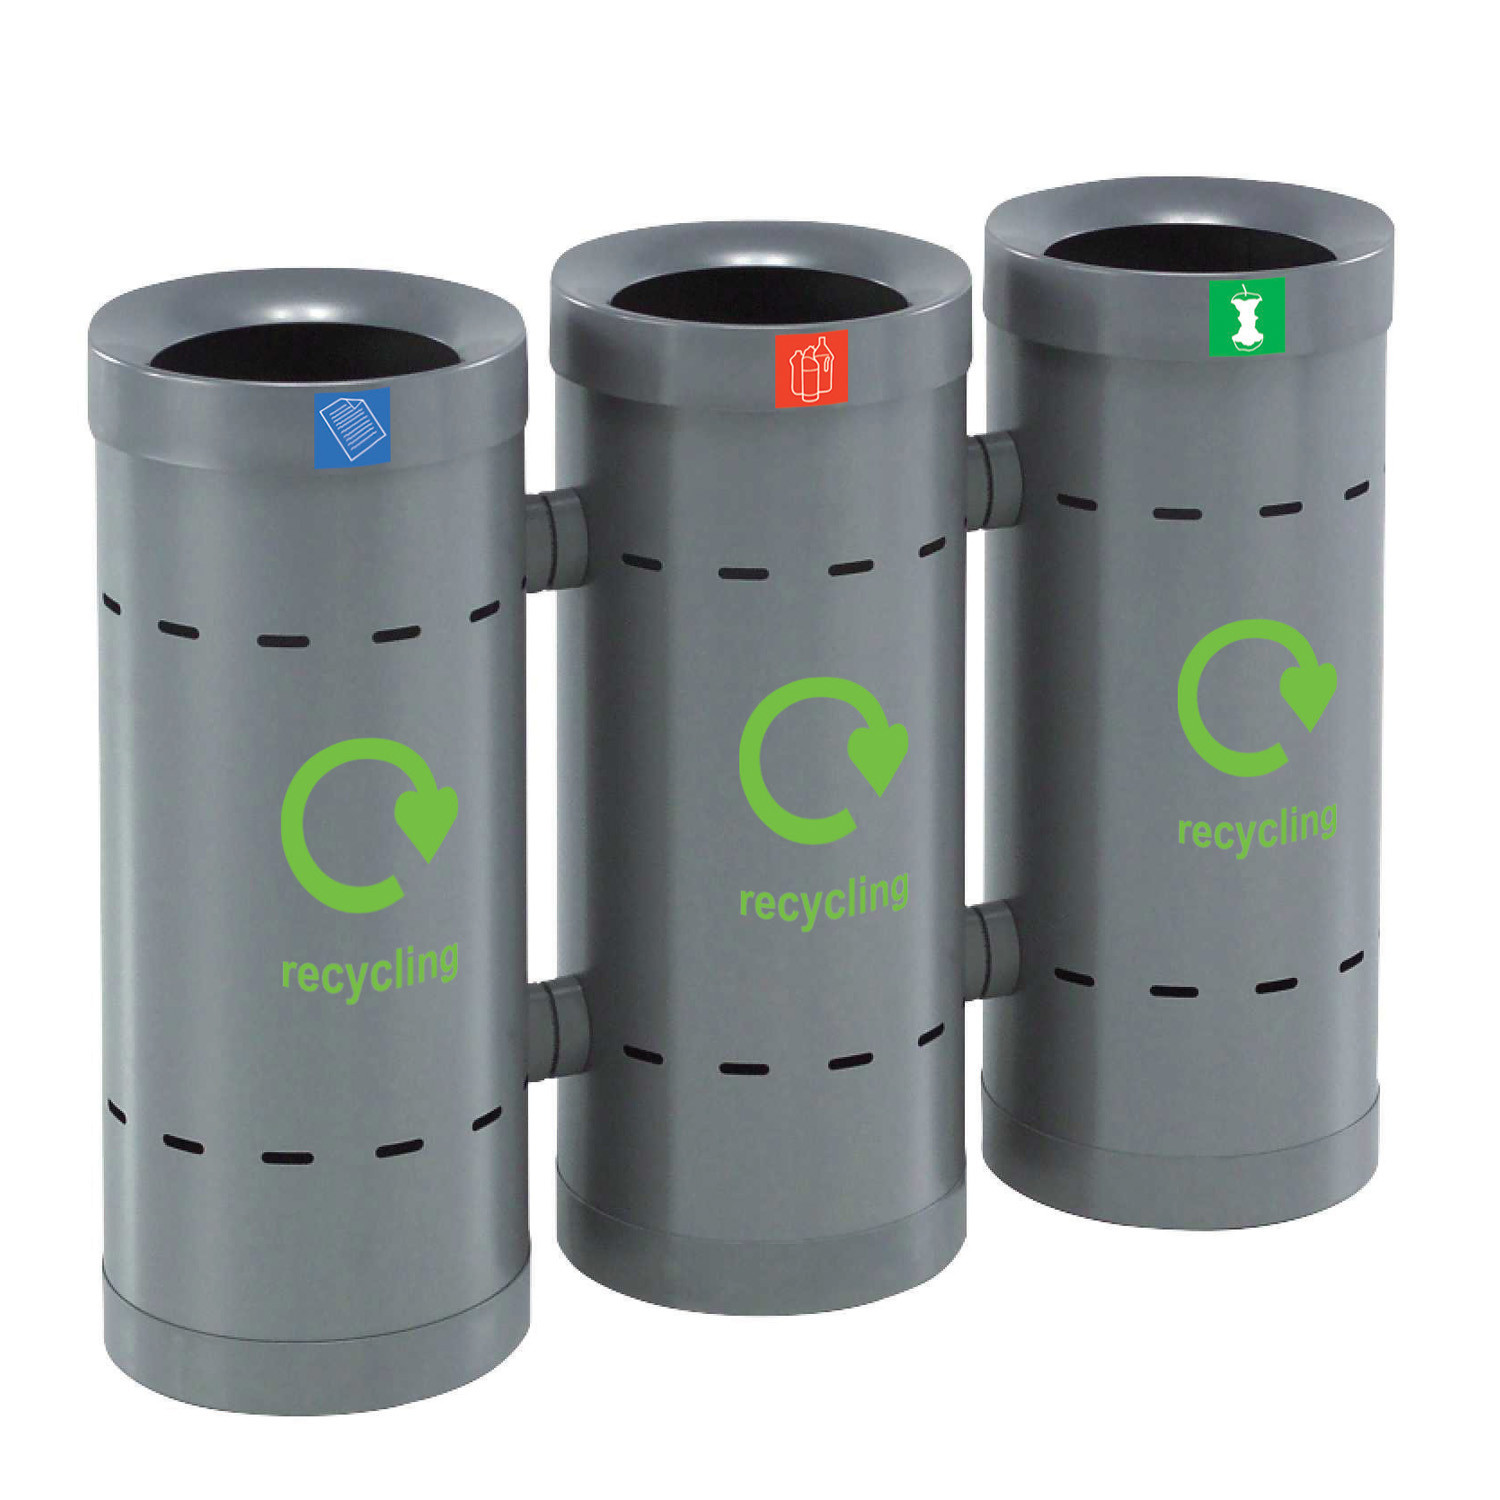 Linkable Recycling Bins By Lesco ...